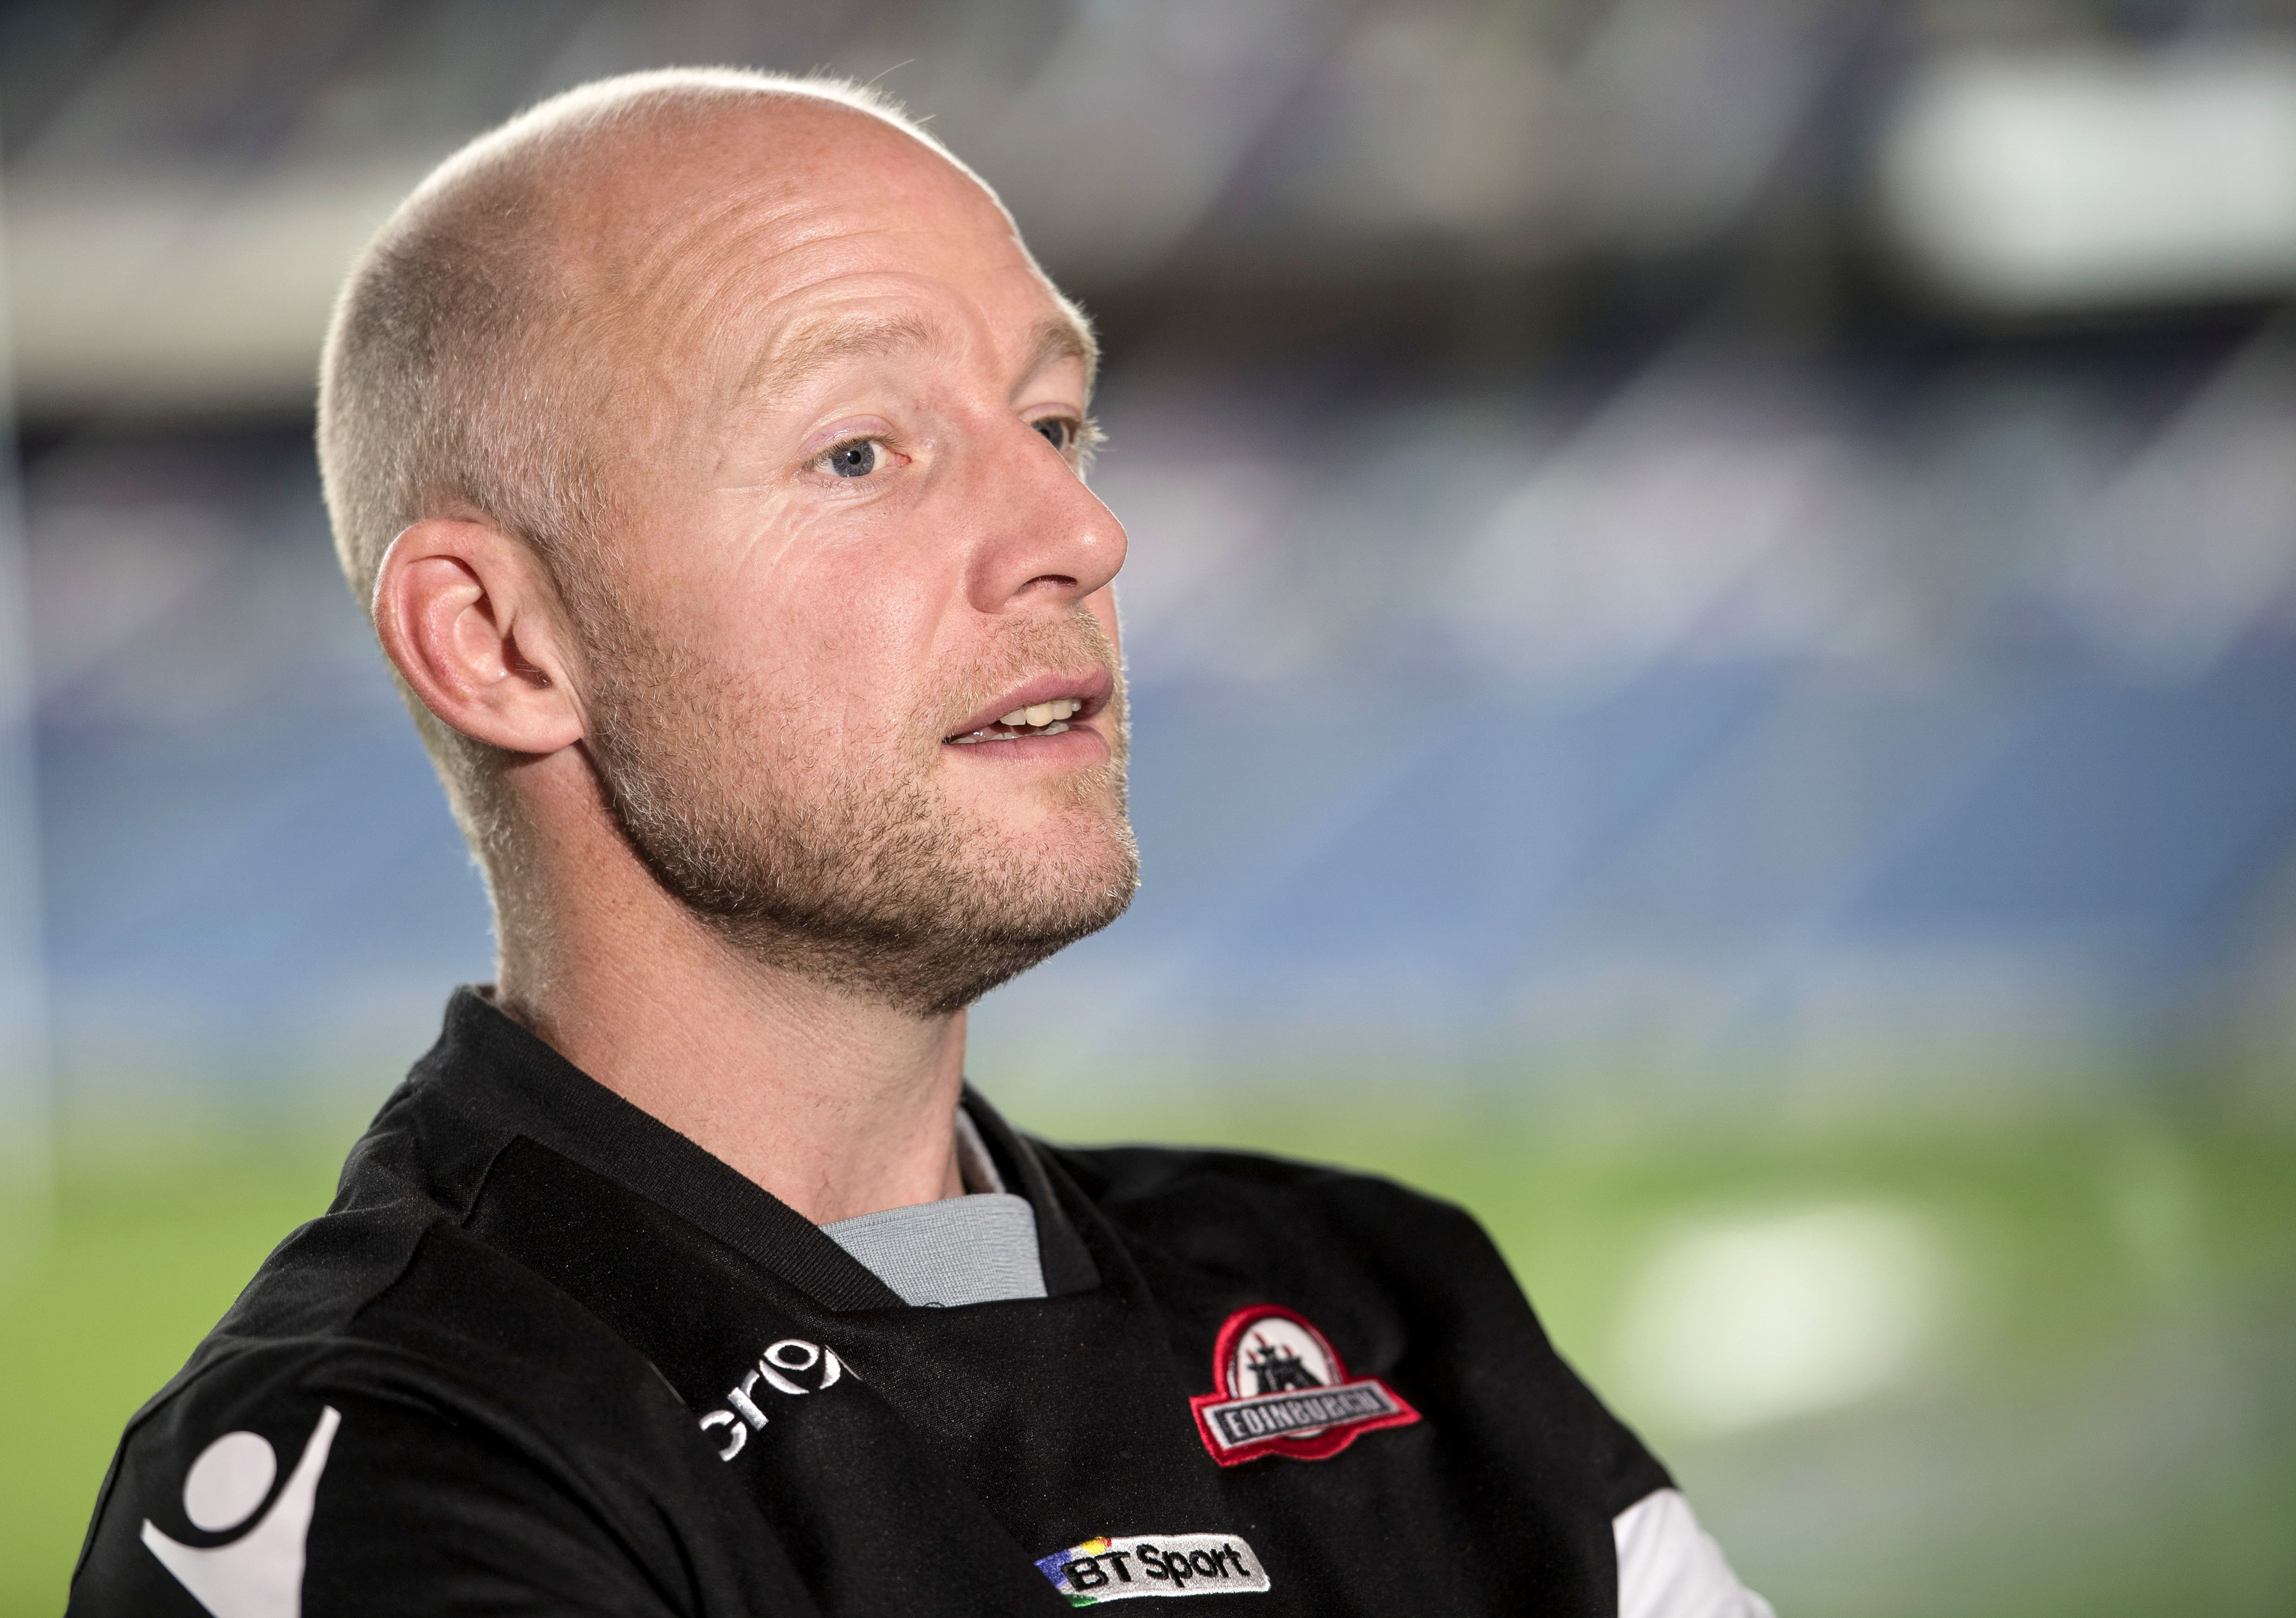 Scting hrad copach Duncan Hodge has opened out Edinburgh's game plan to the tune of 22 tries in their last three games.